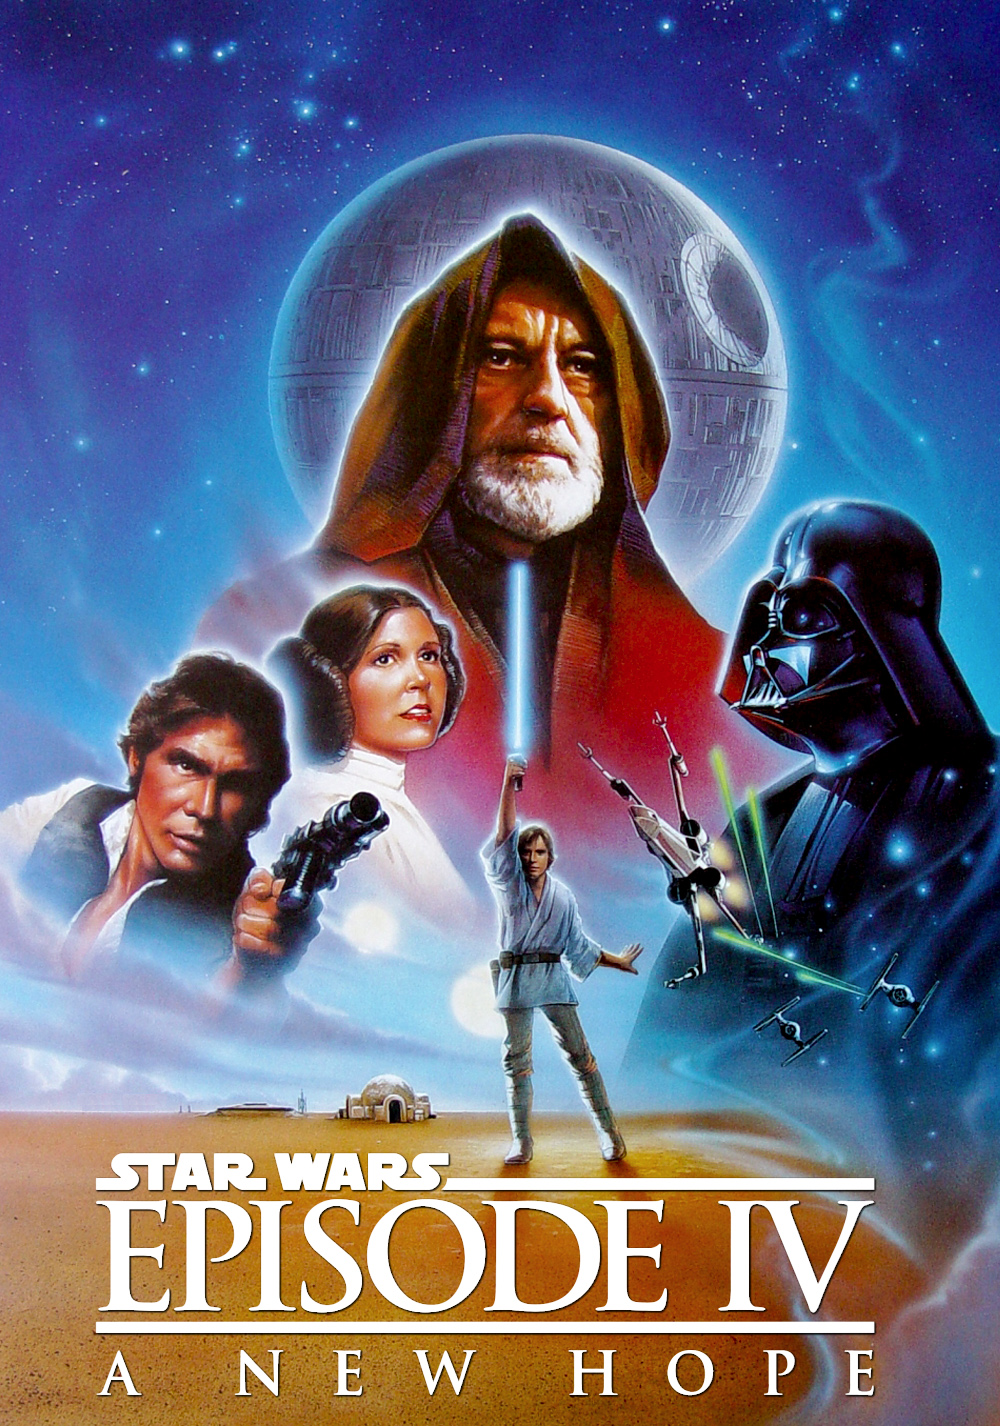 Star Wars Episode Iv A New Hope Movie Poster Id 125225 Image Abyss